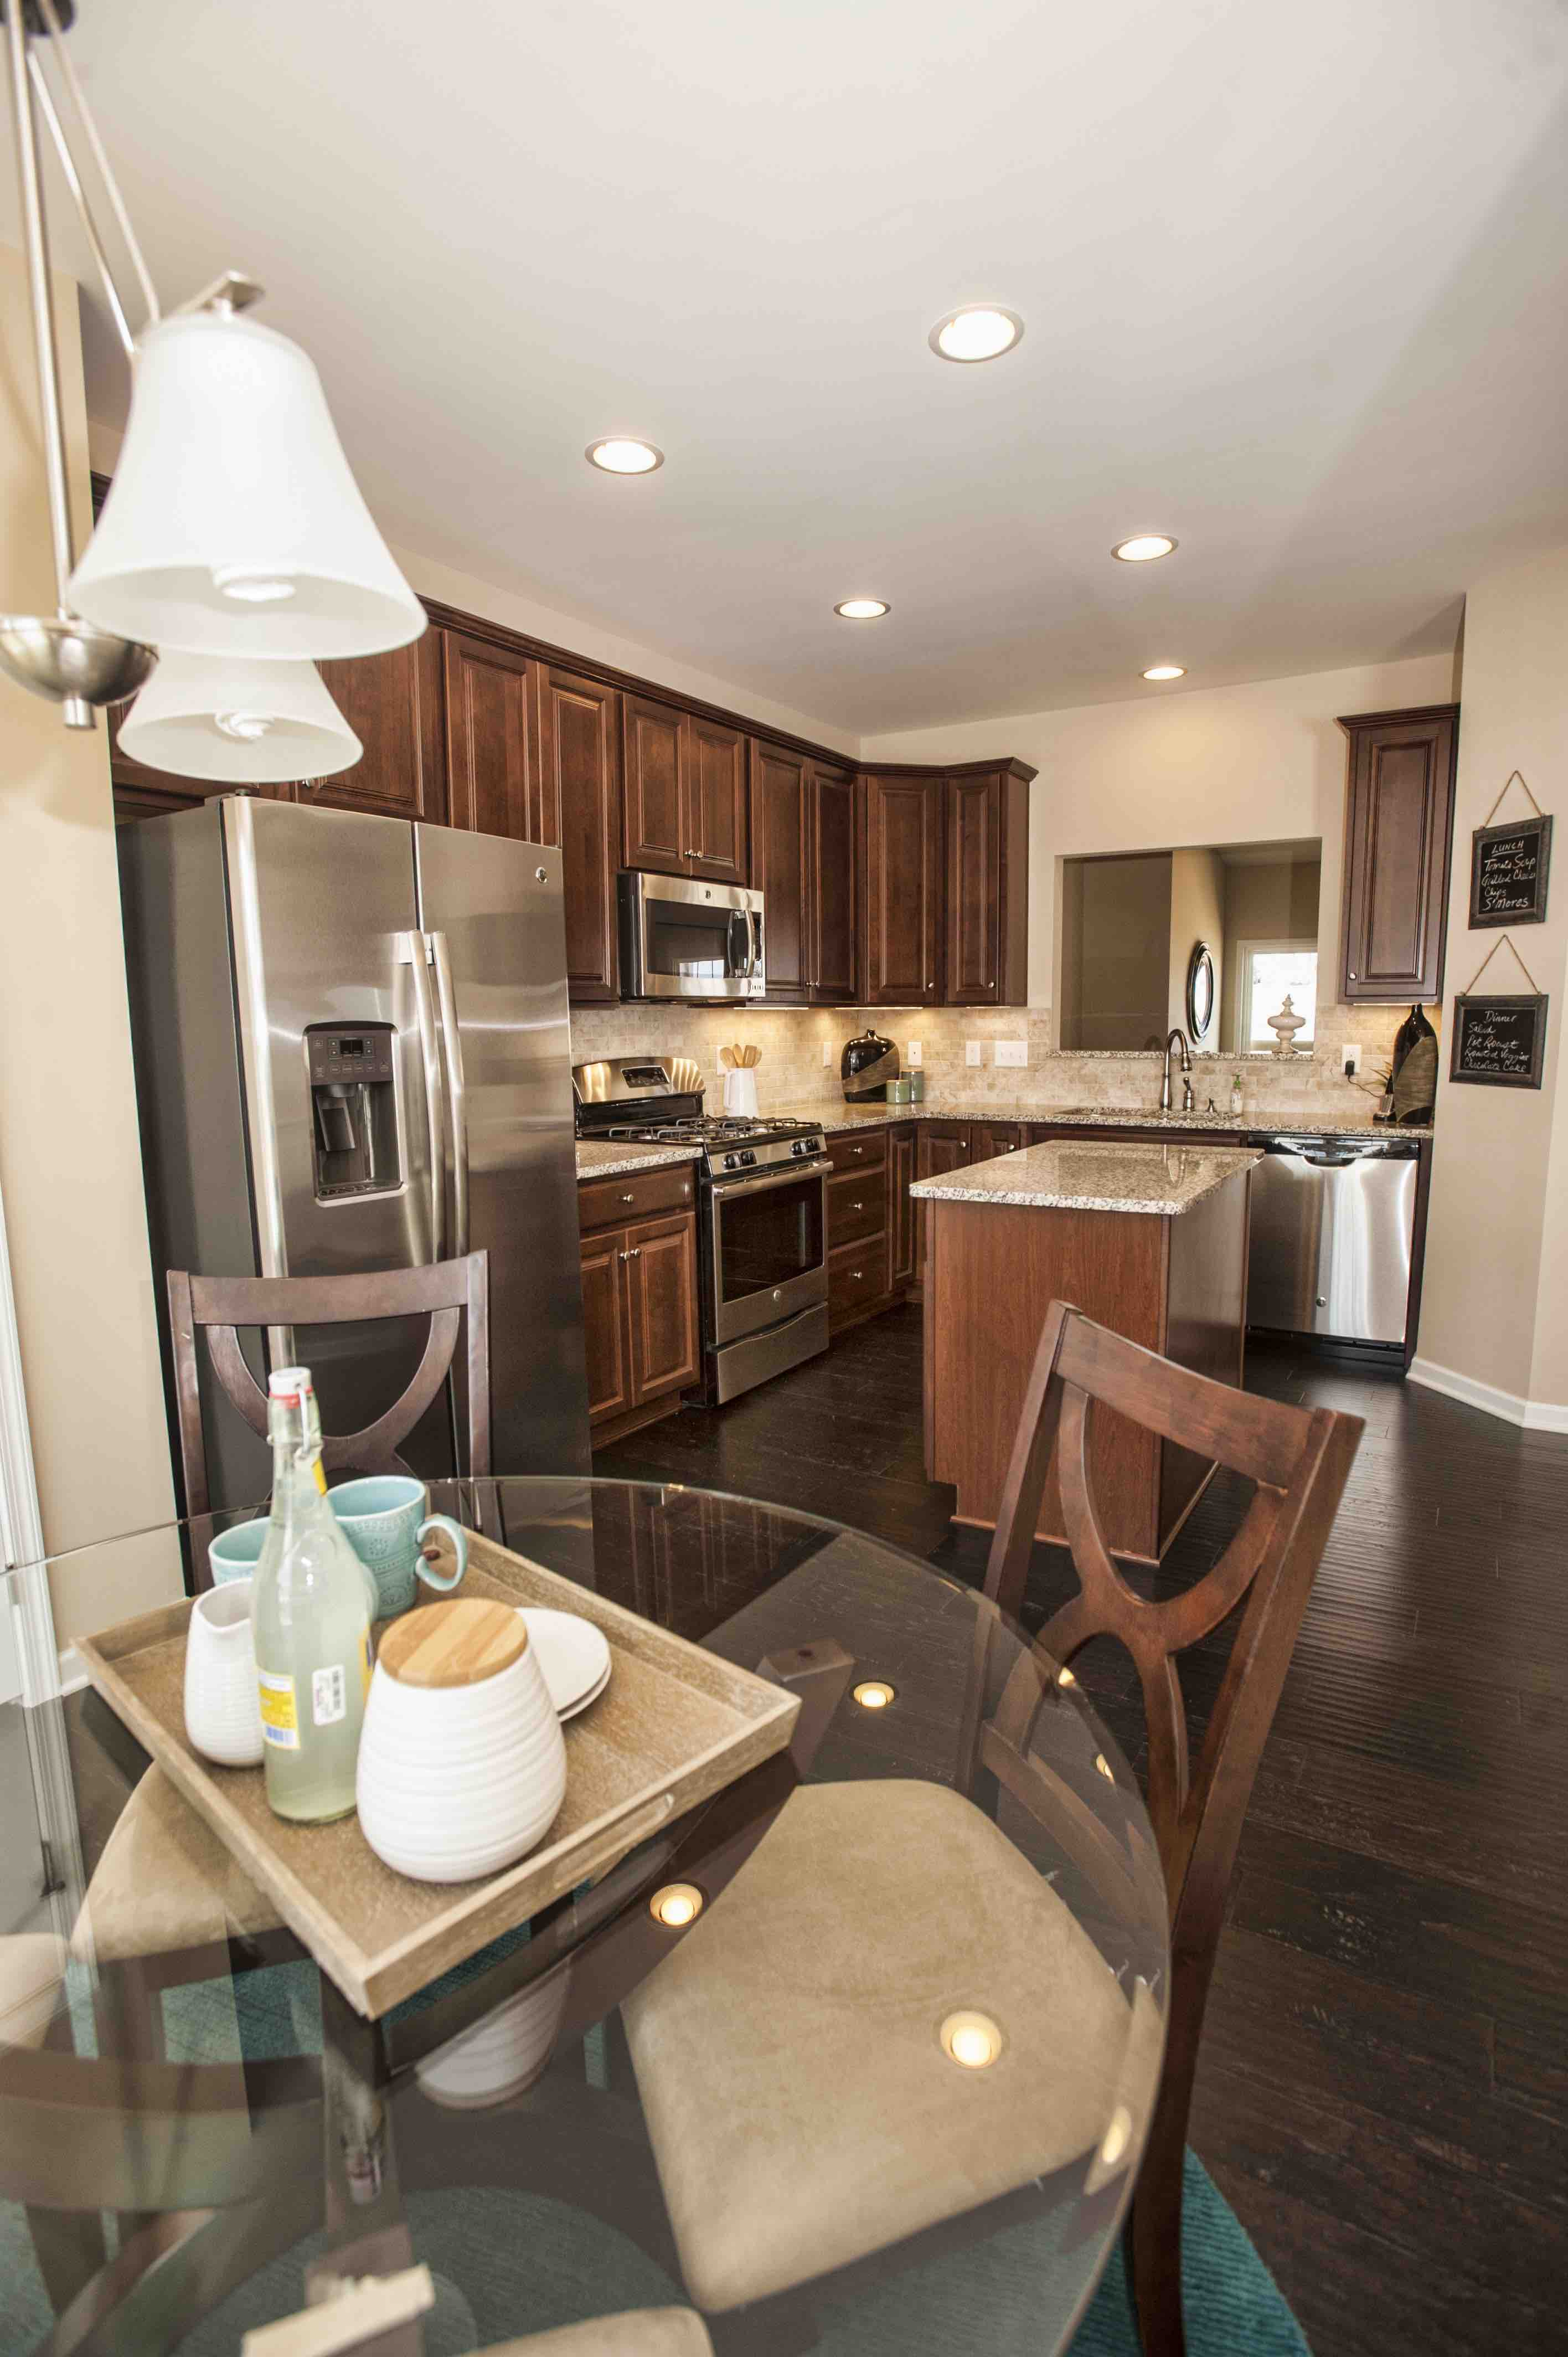 Featured home: ryan homes highlights new ranch design ...